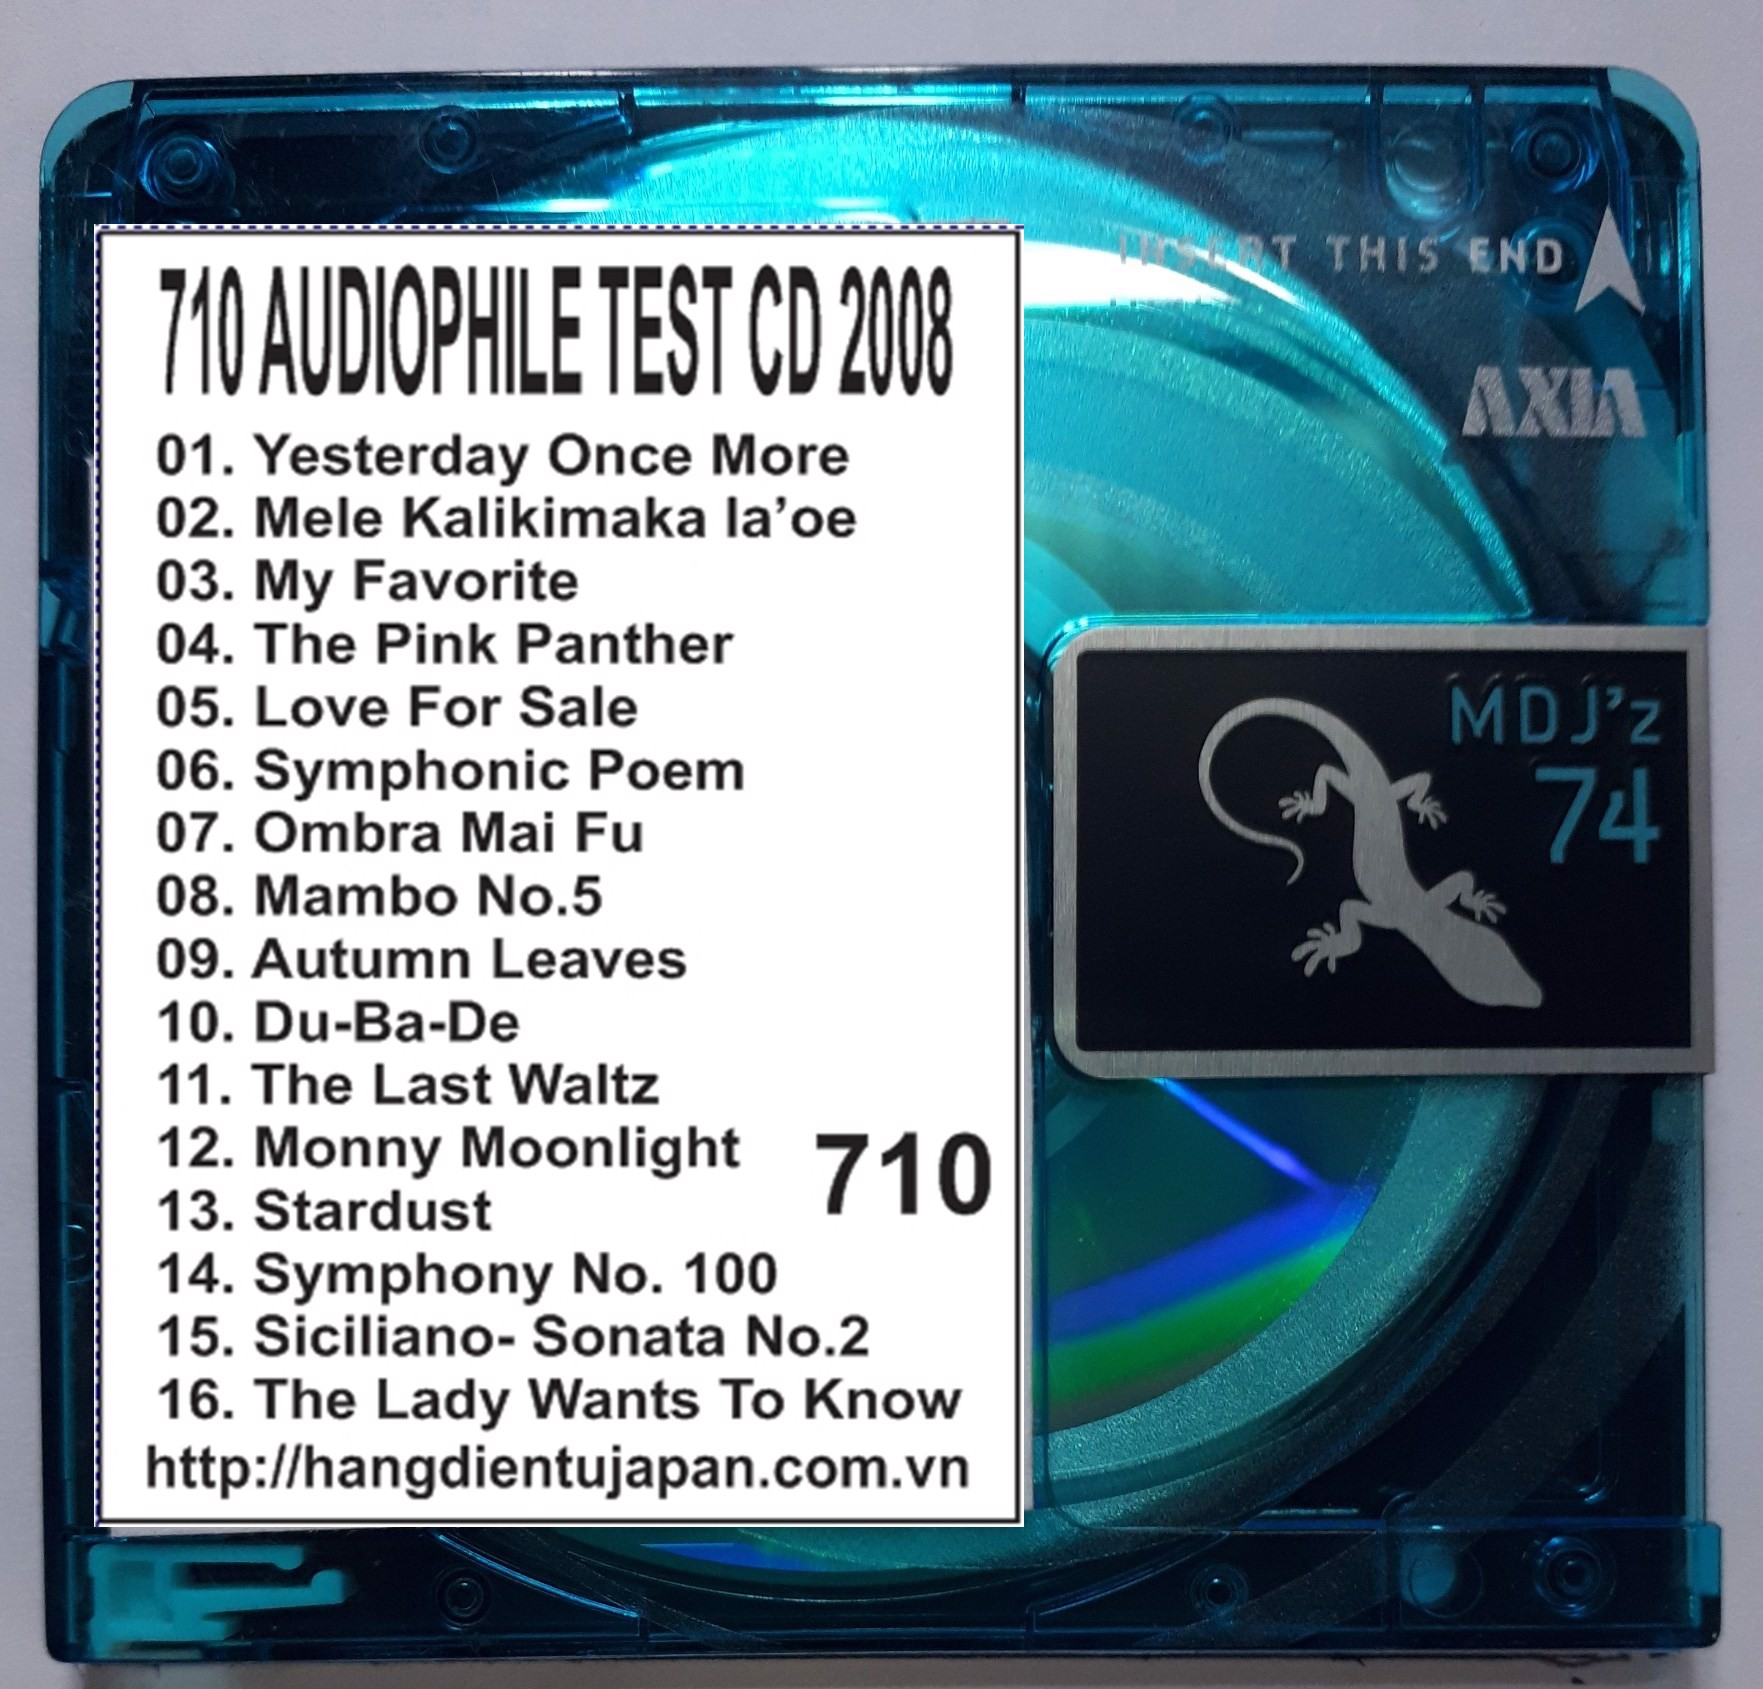 710 AUDIOPHILE TEST CD 2008